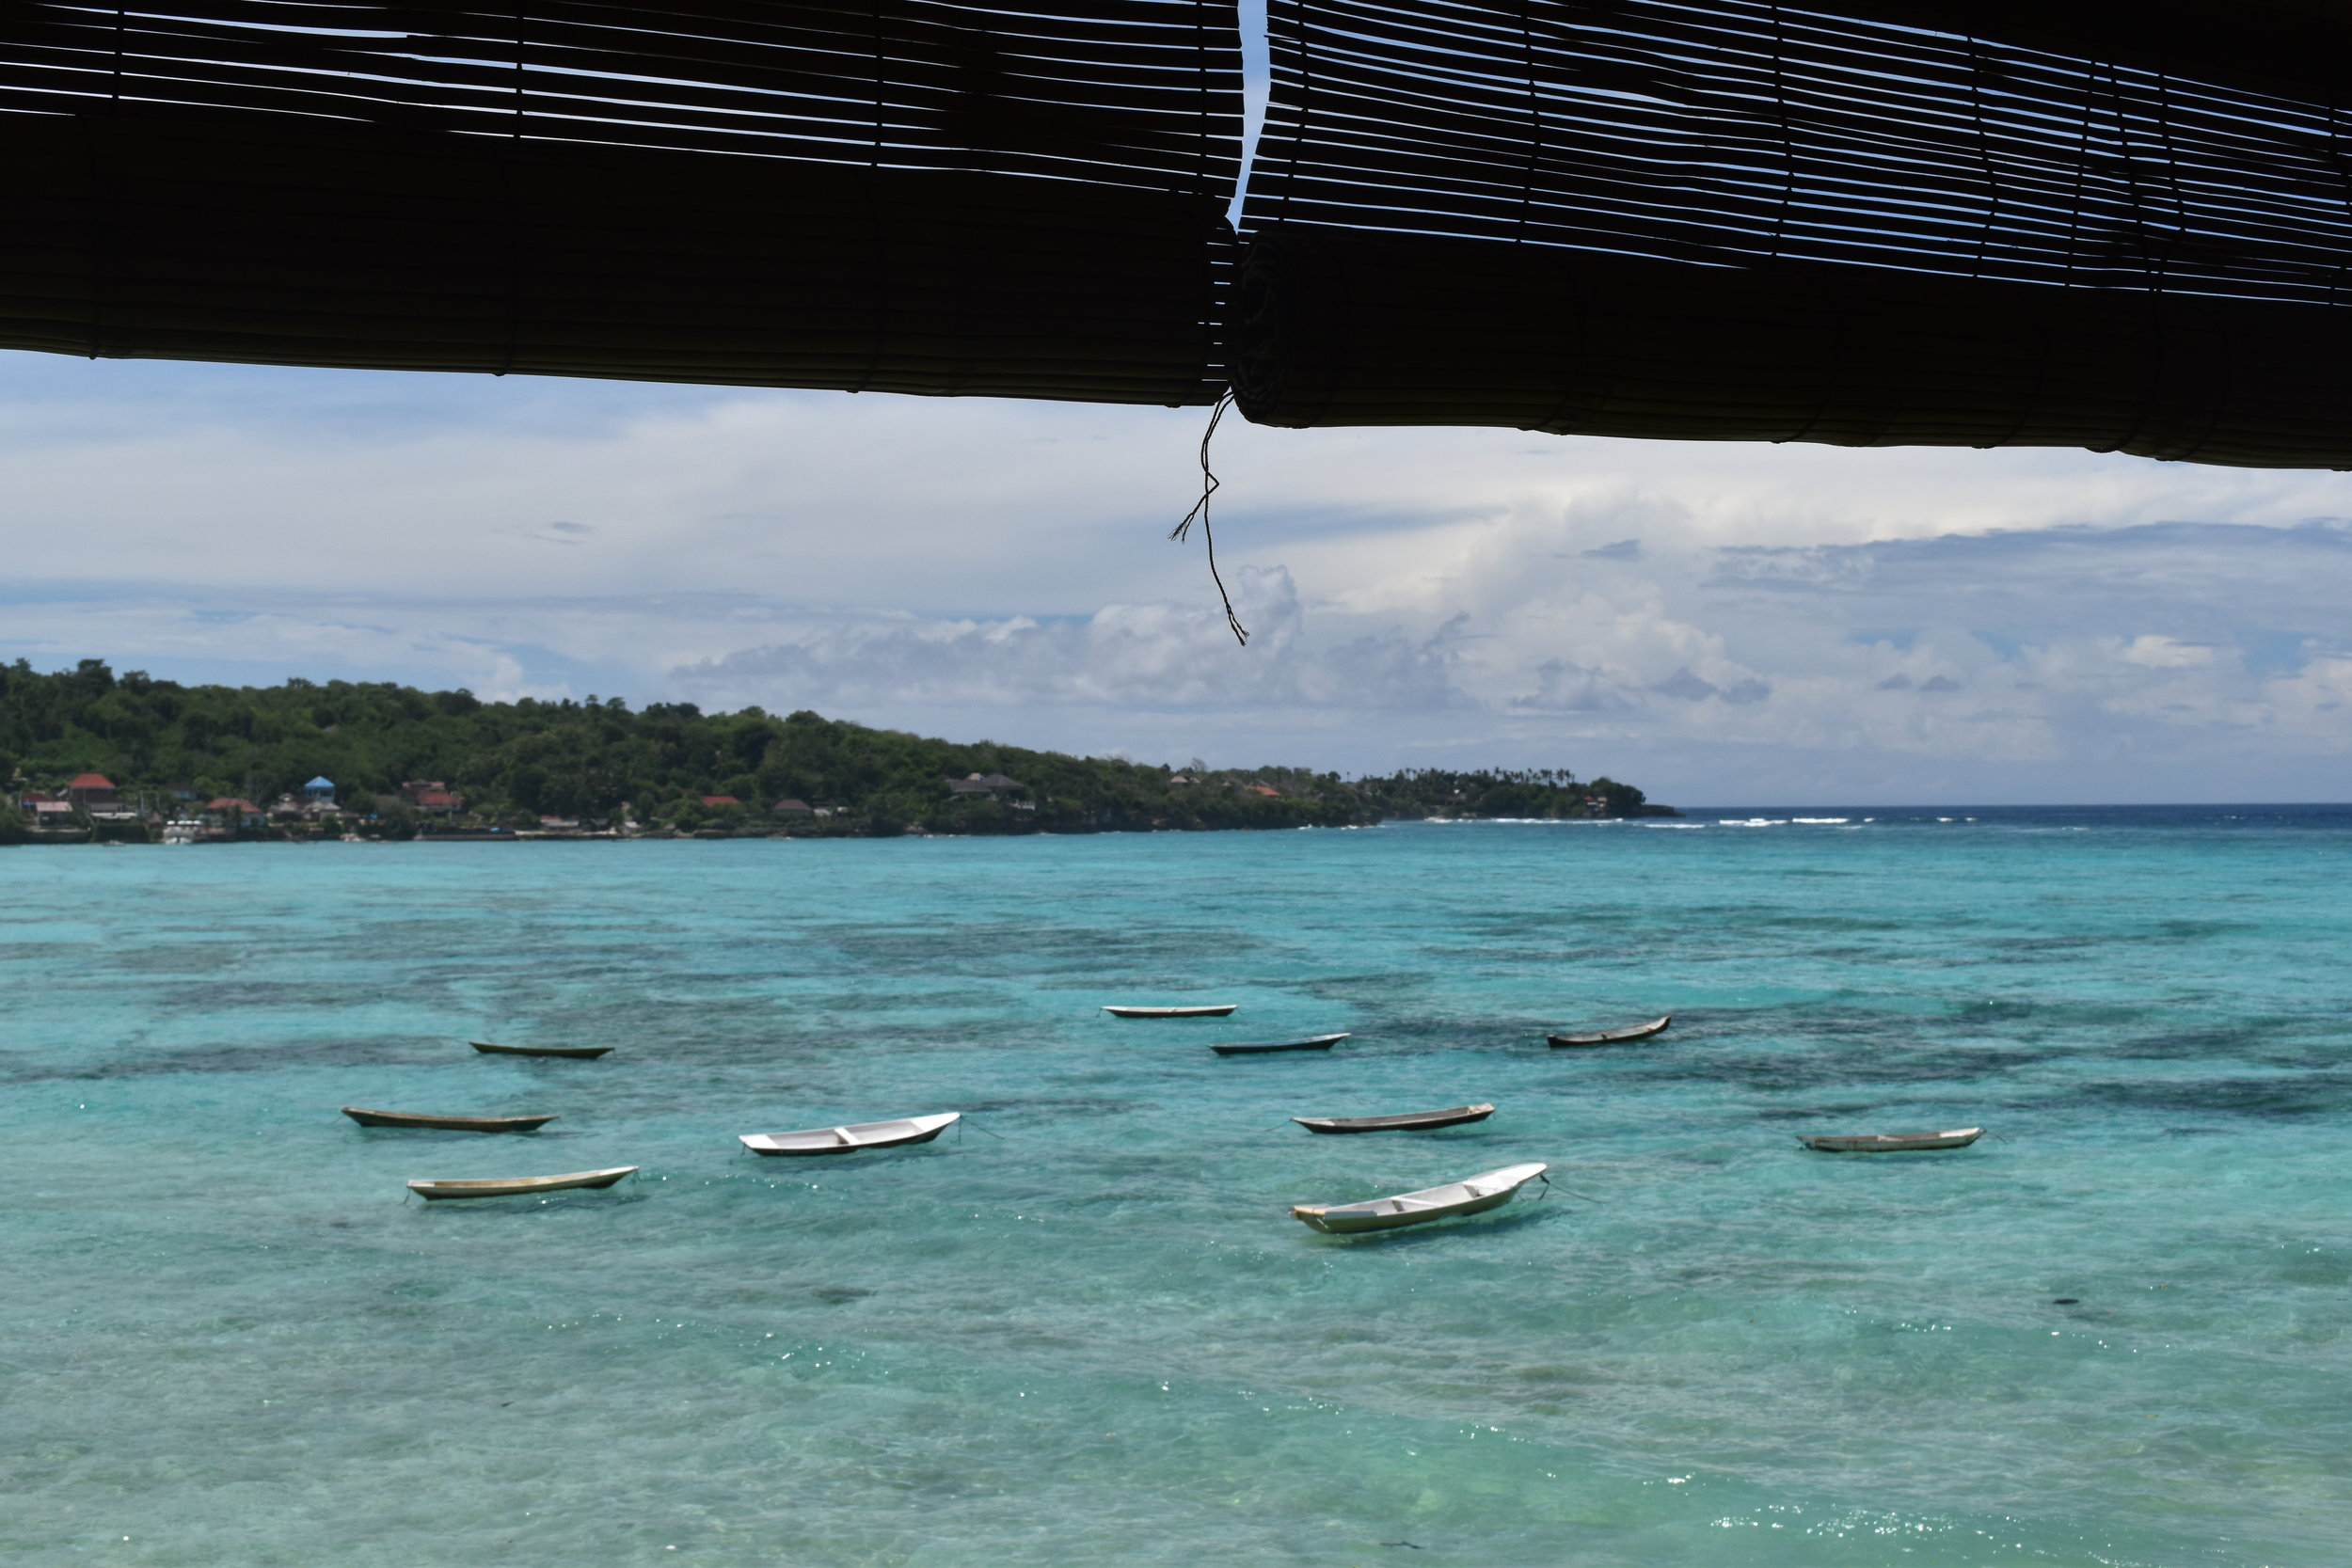 The view from the bar at Mama Mia, overlooking a seaweed farm.